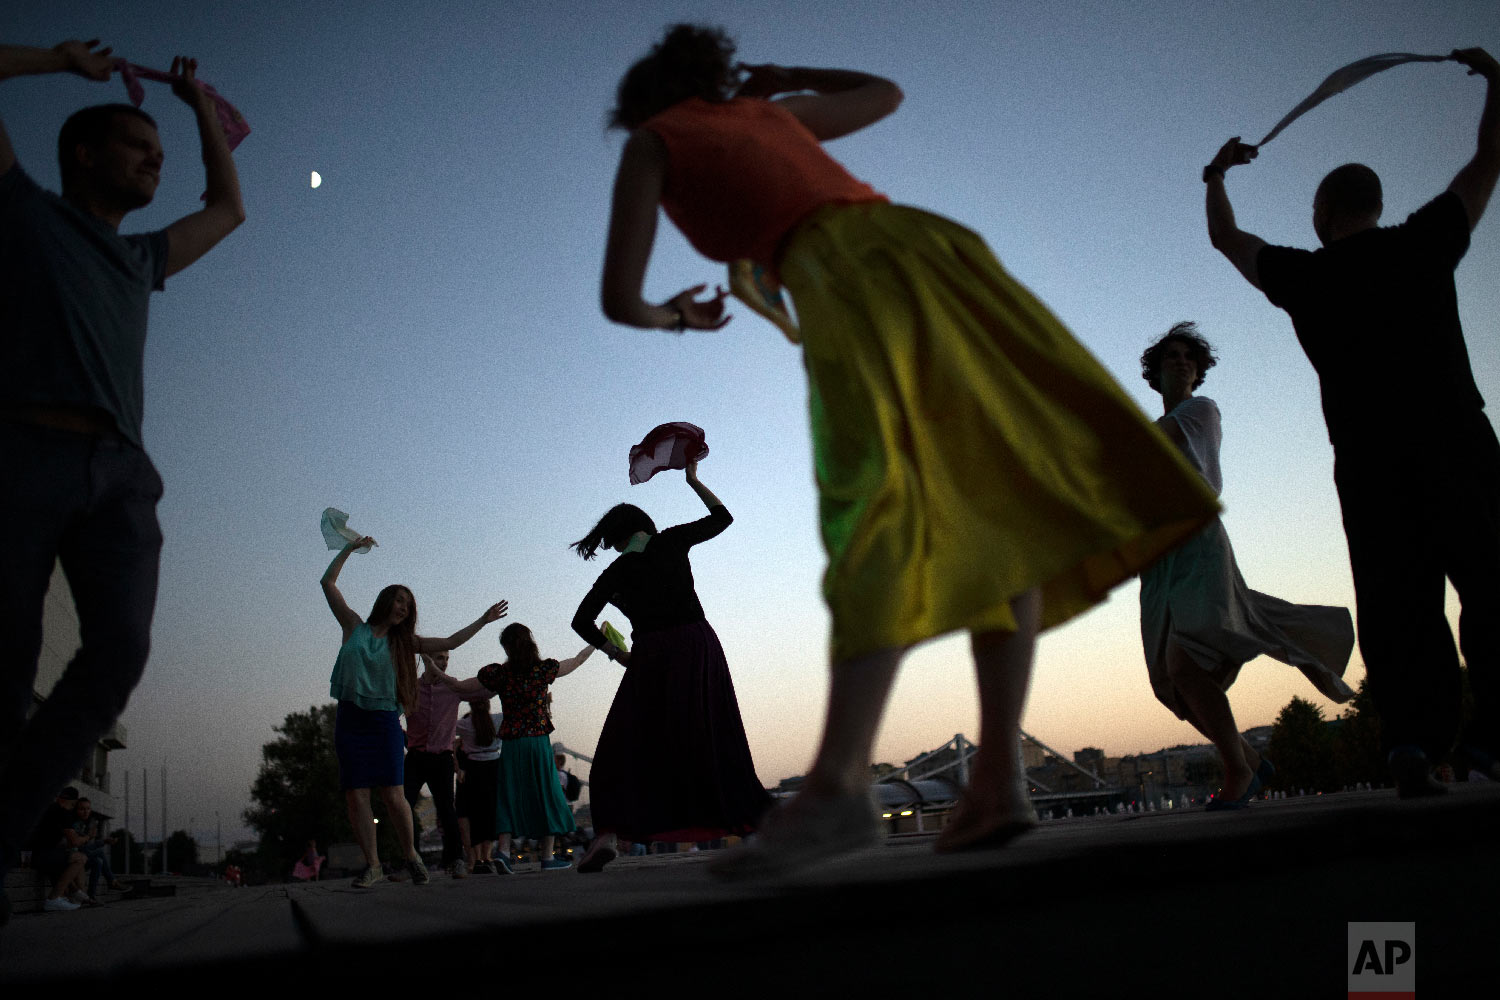 People perform Argentinian dances at the Moskva riverside in Moscow, Russia on June 20, 2018. (AP Photo/Francisco Seco)